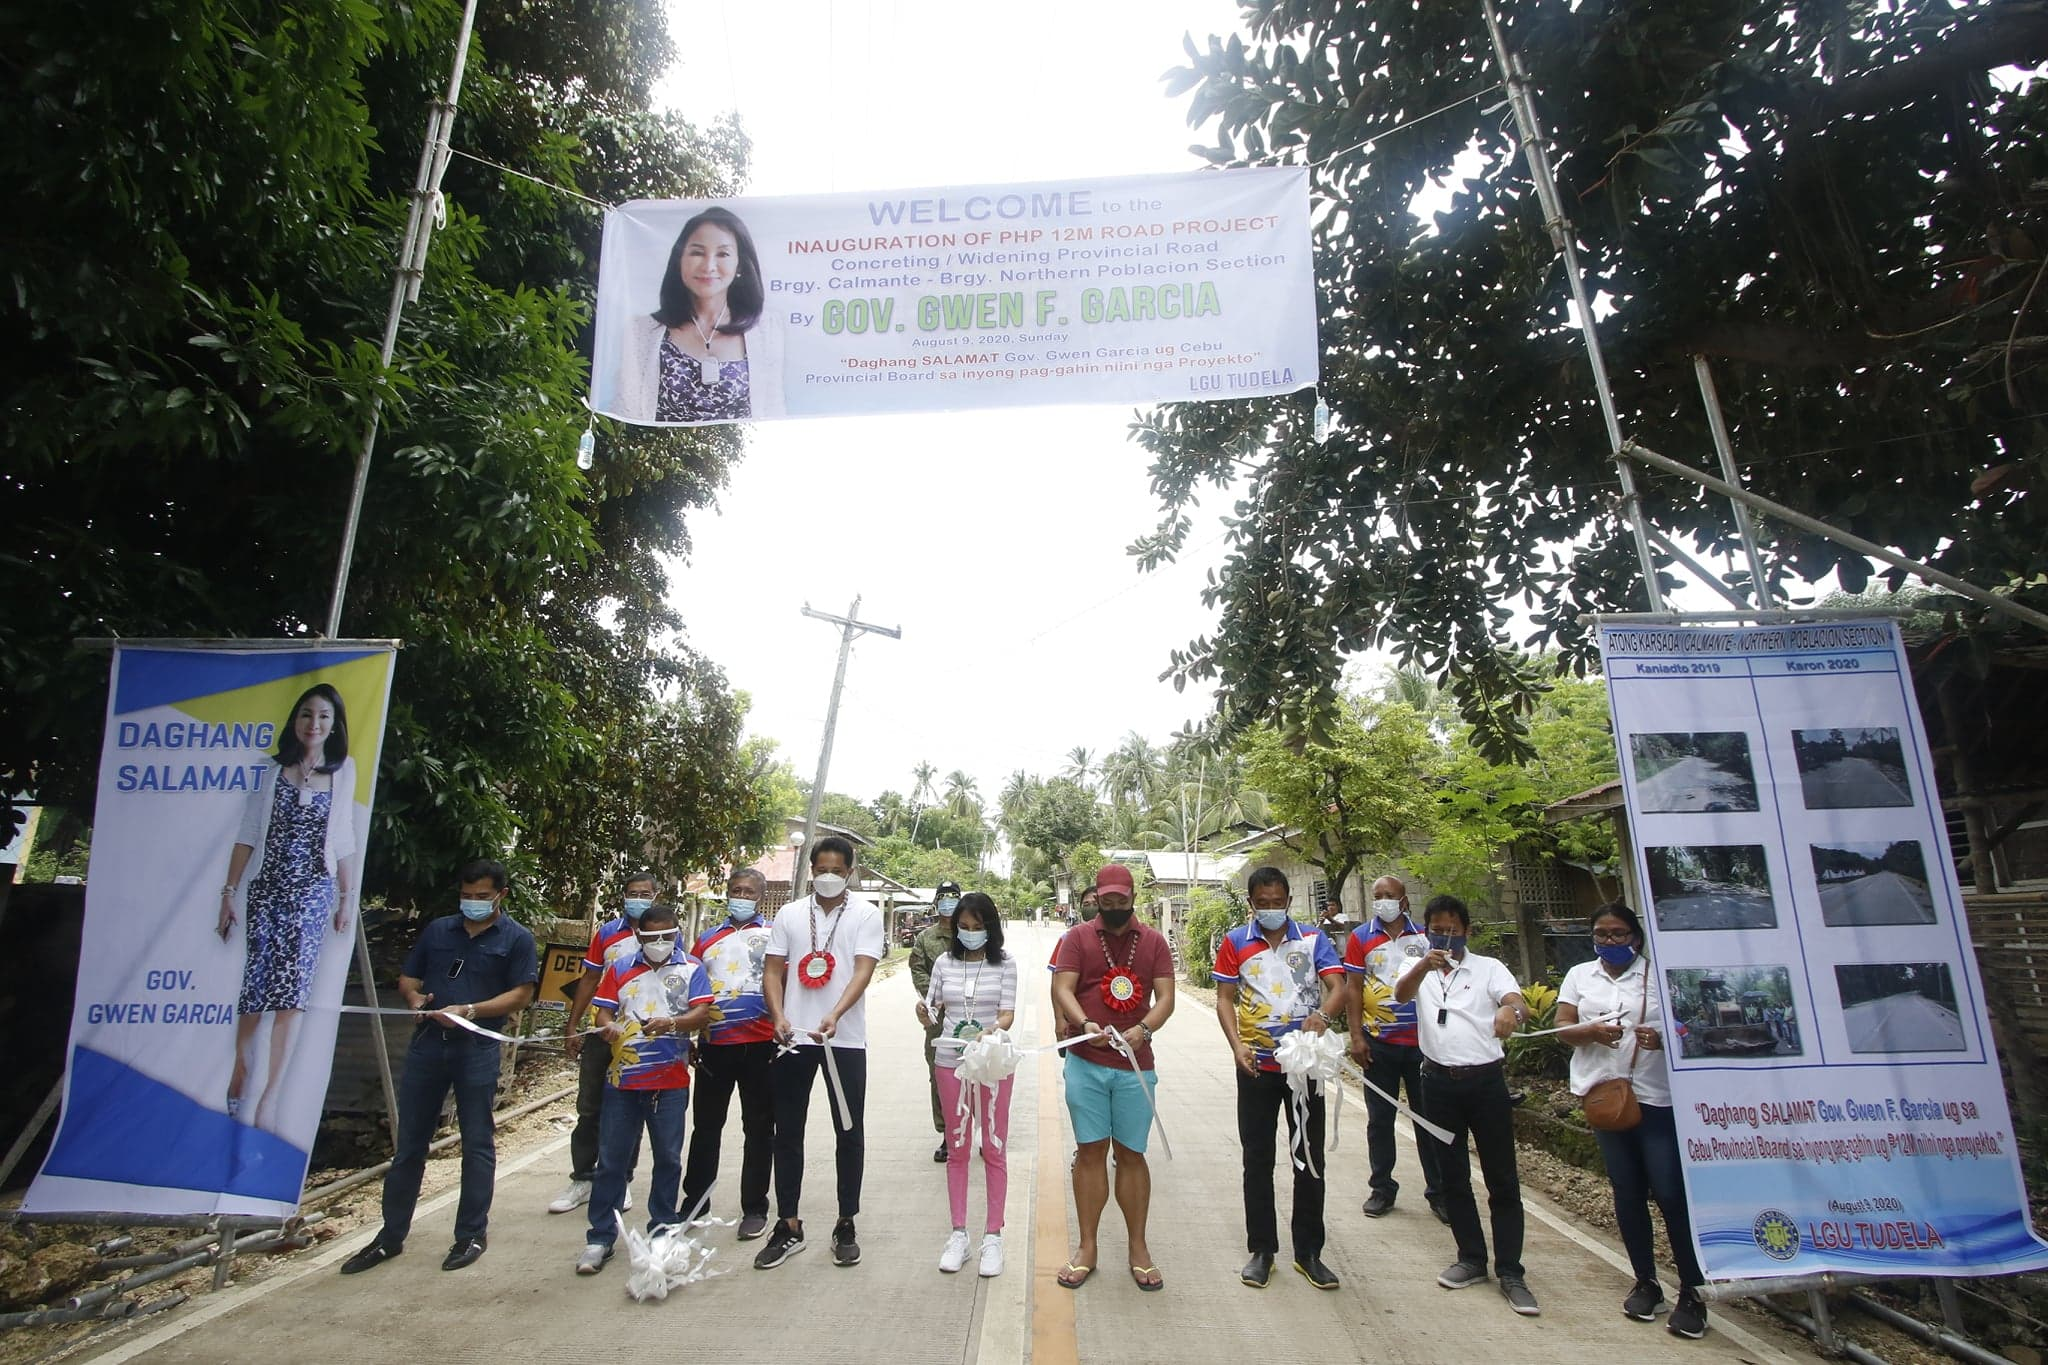 New improved brgy road in Tudela opens